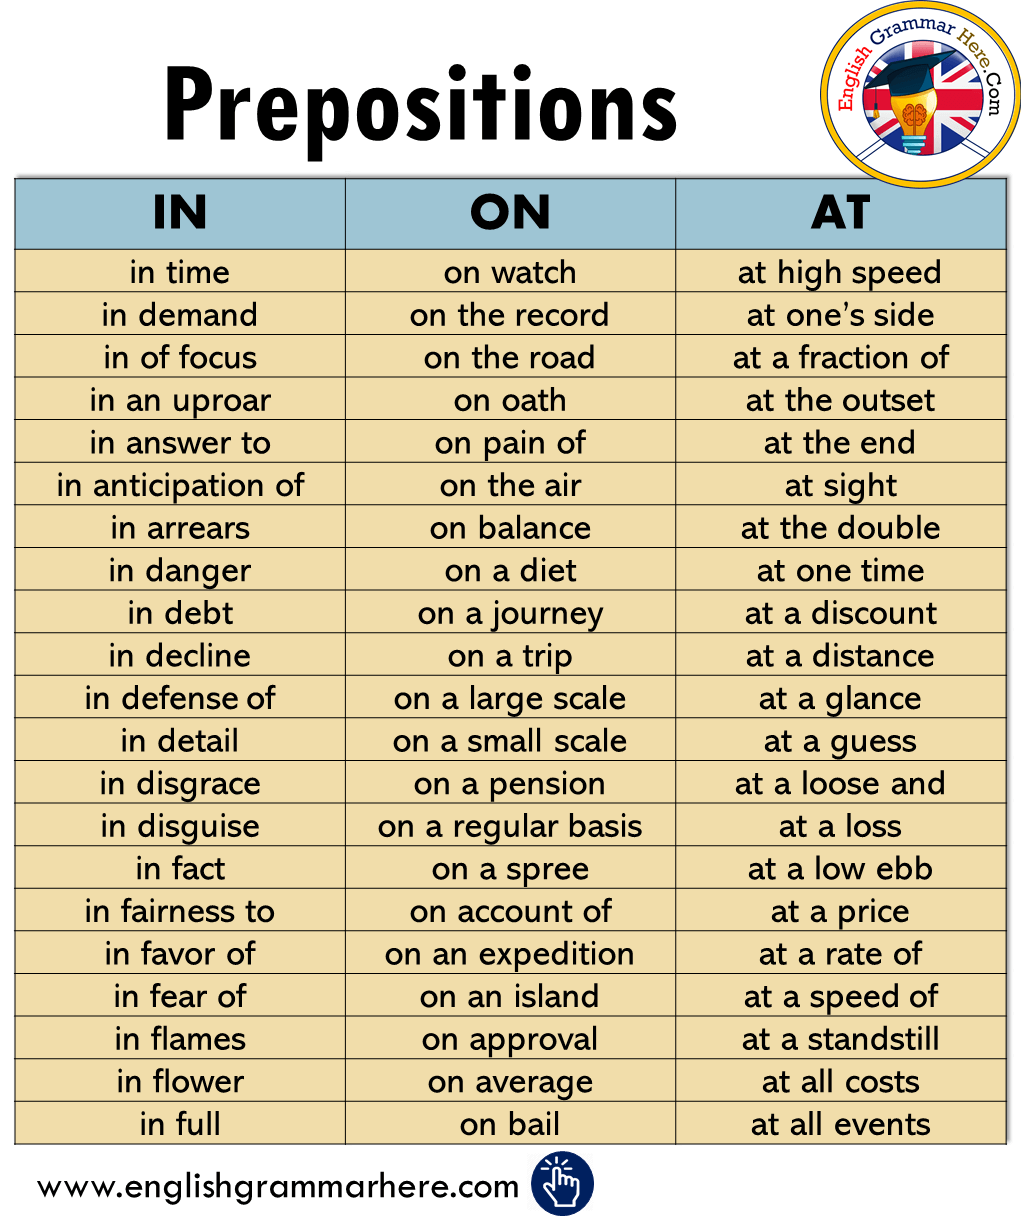 Prepositions; At, In, On